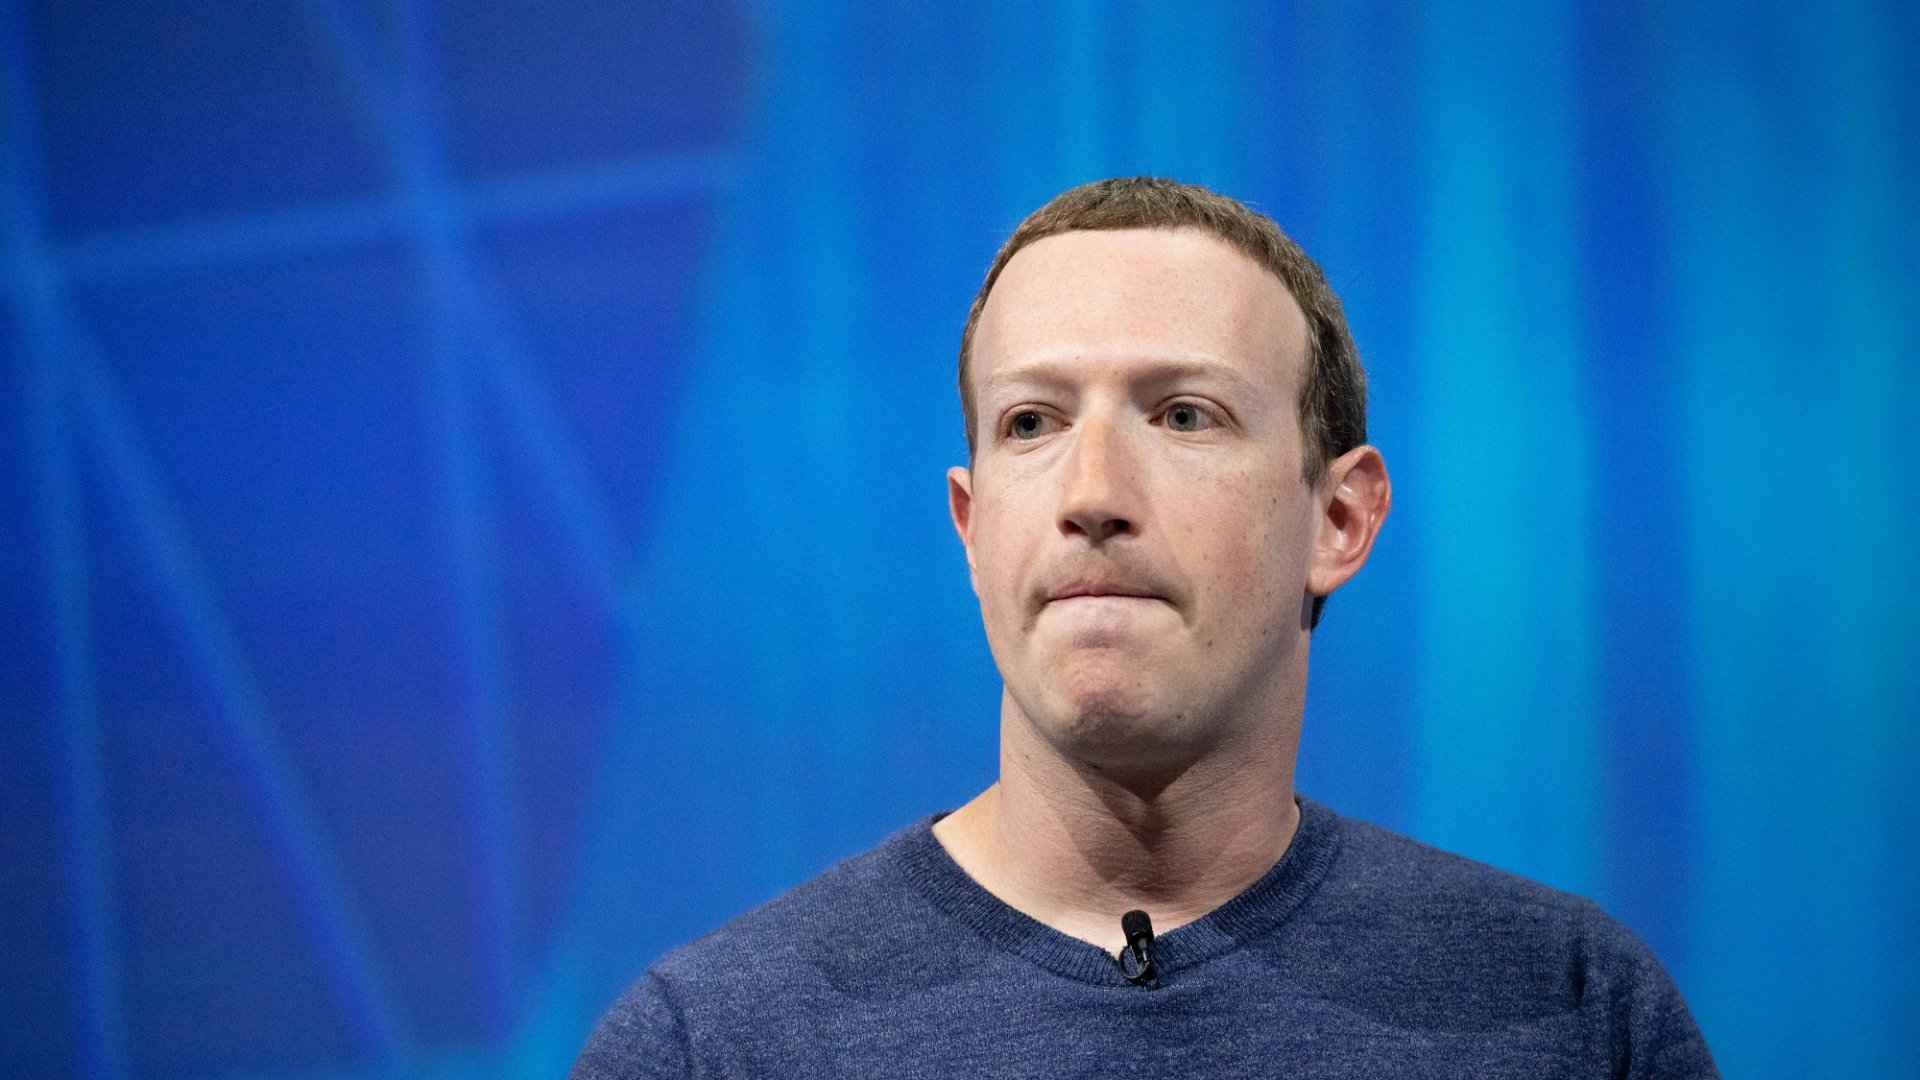 Facebook's Current State Is What Happens When Executives Don't Have Checks and Balances